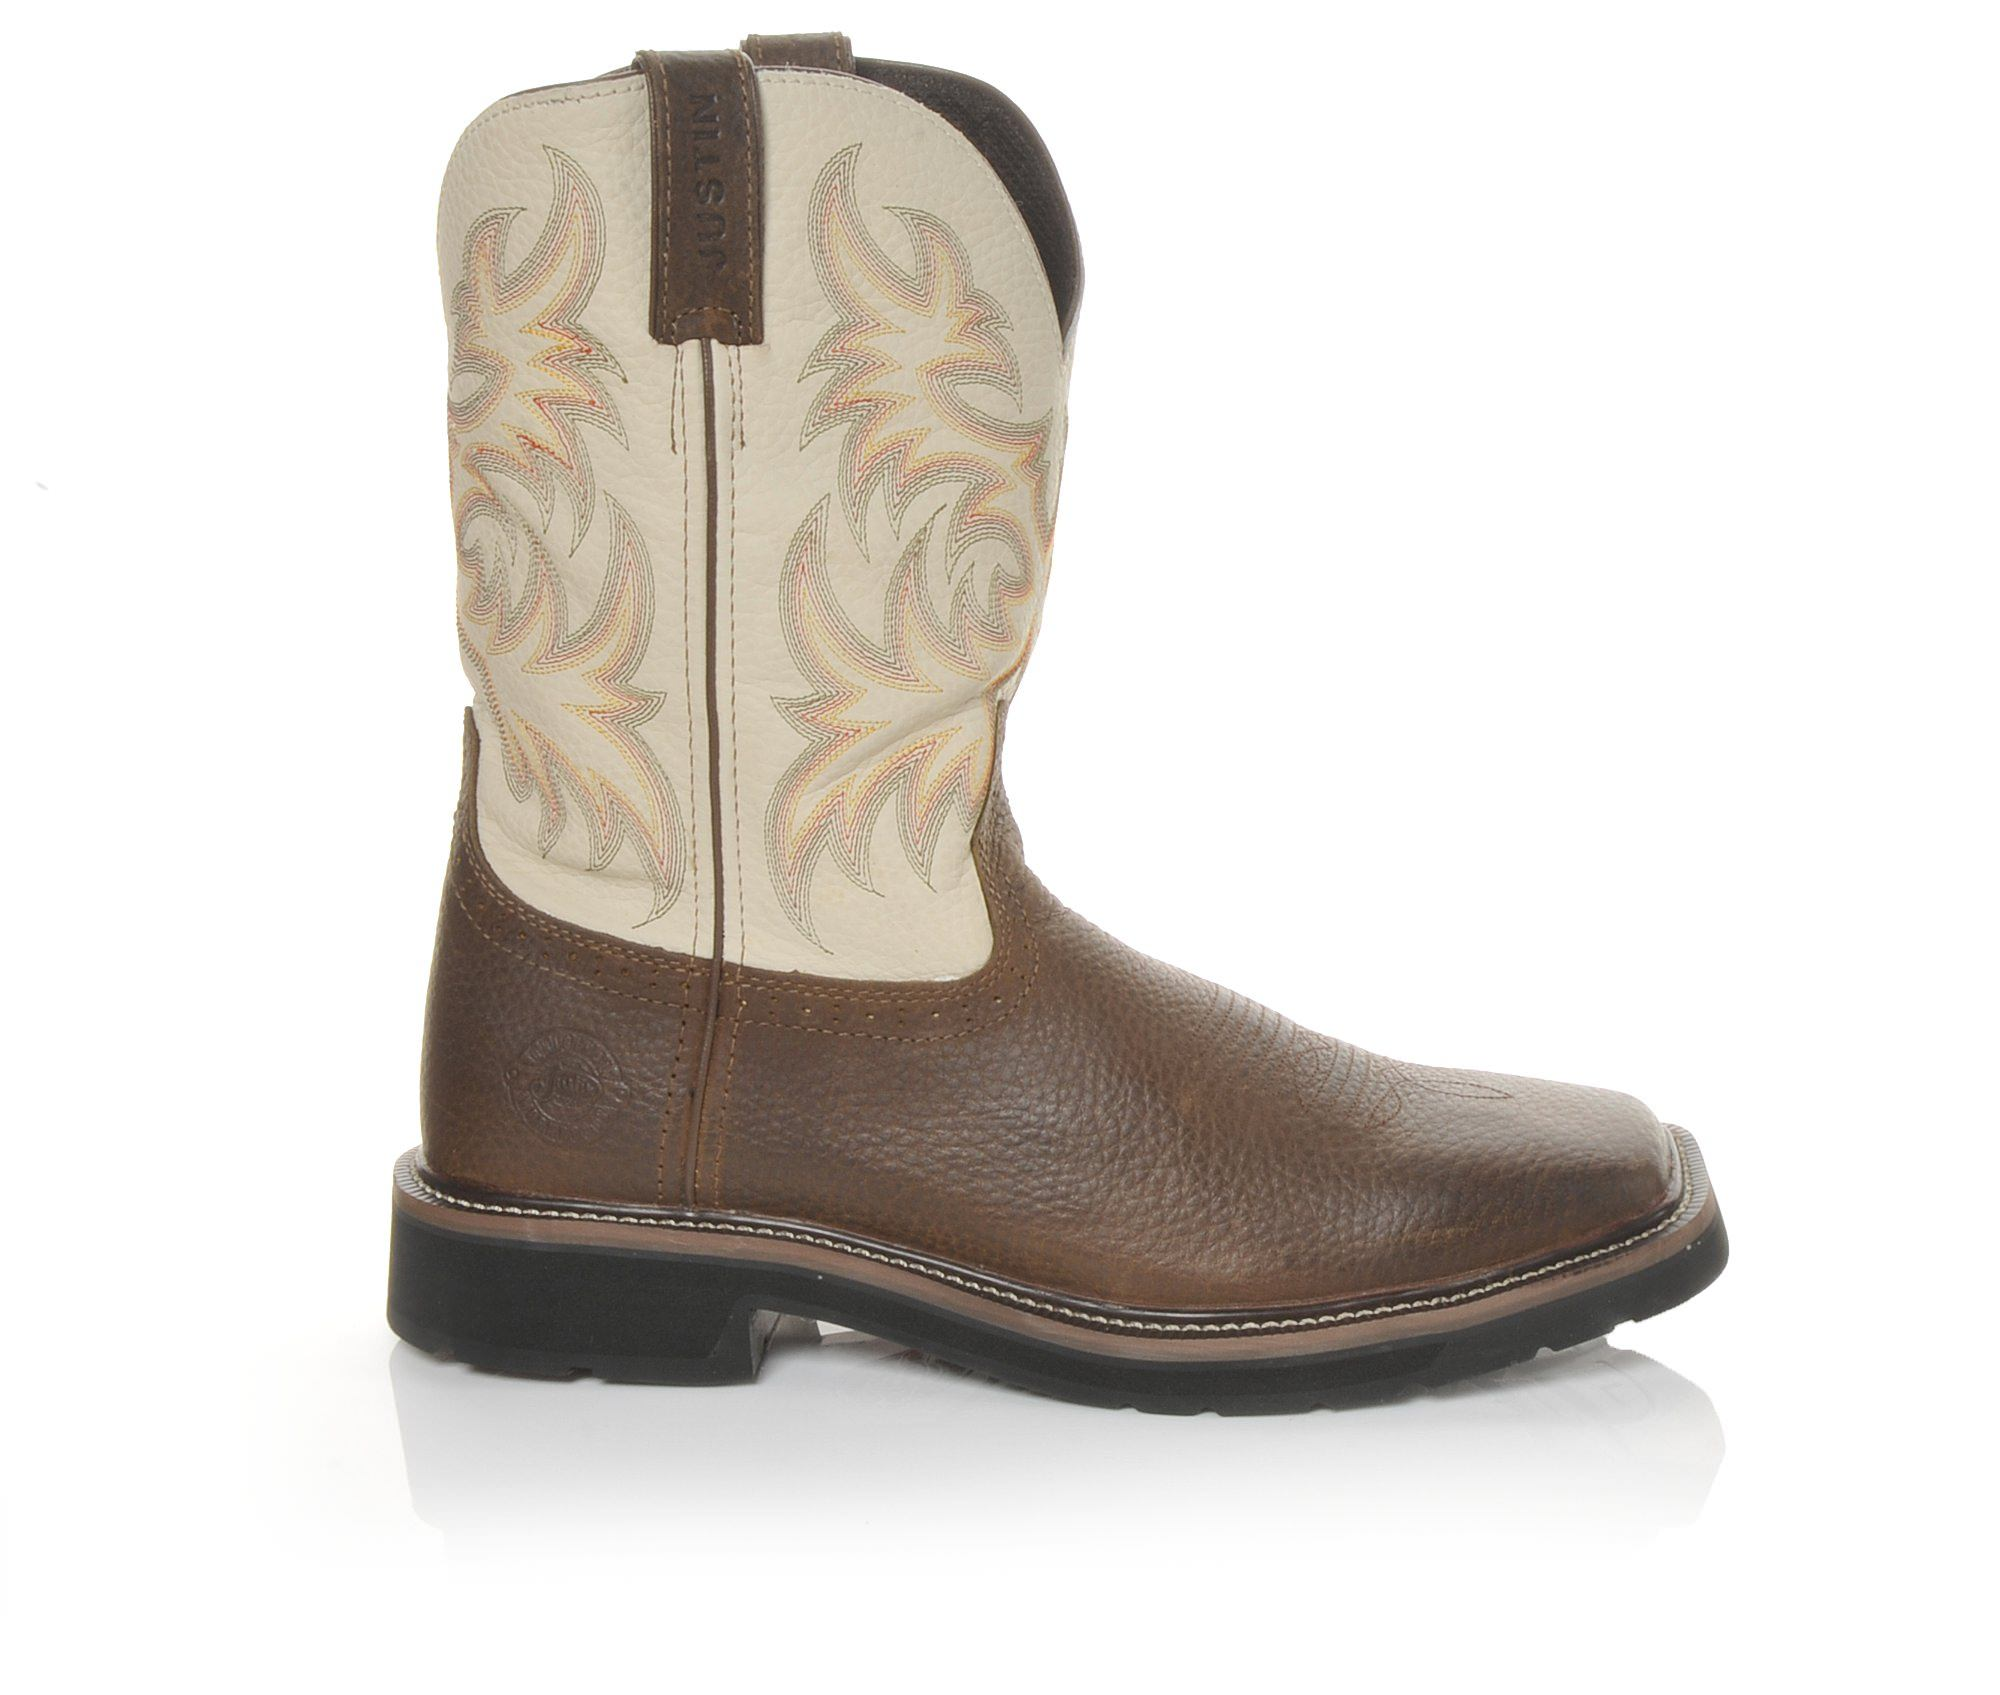 Justin Boots WK 4683 Stampede 11 In Men's Boots (Brown Leather)